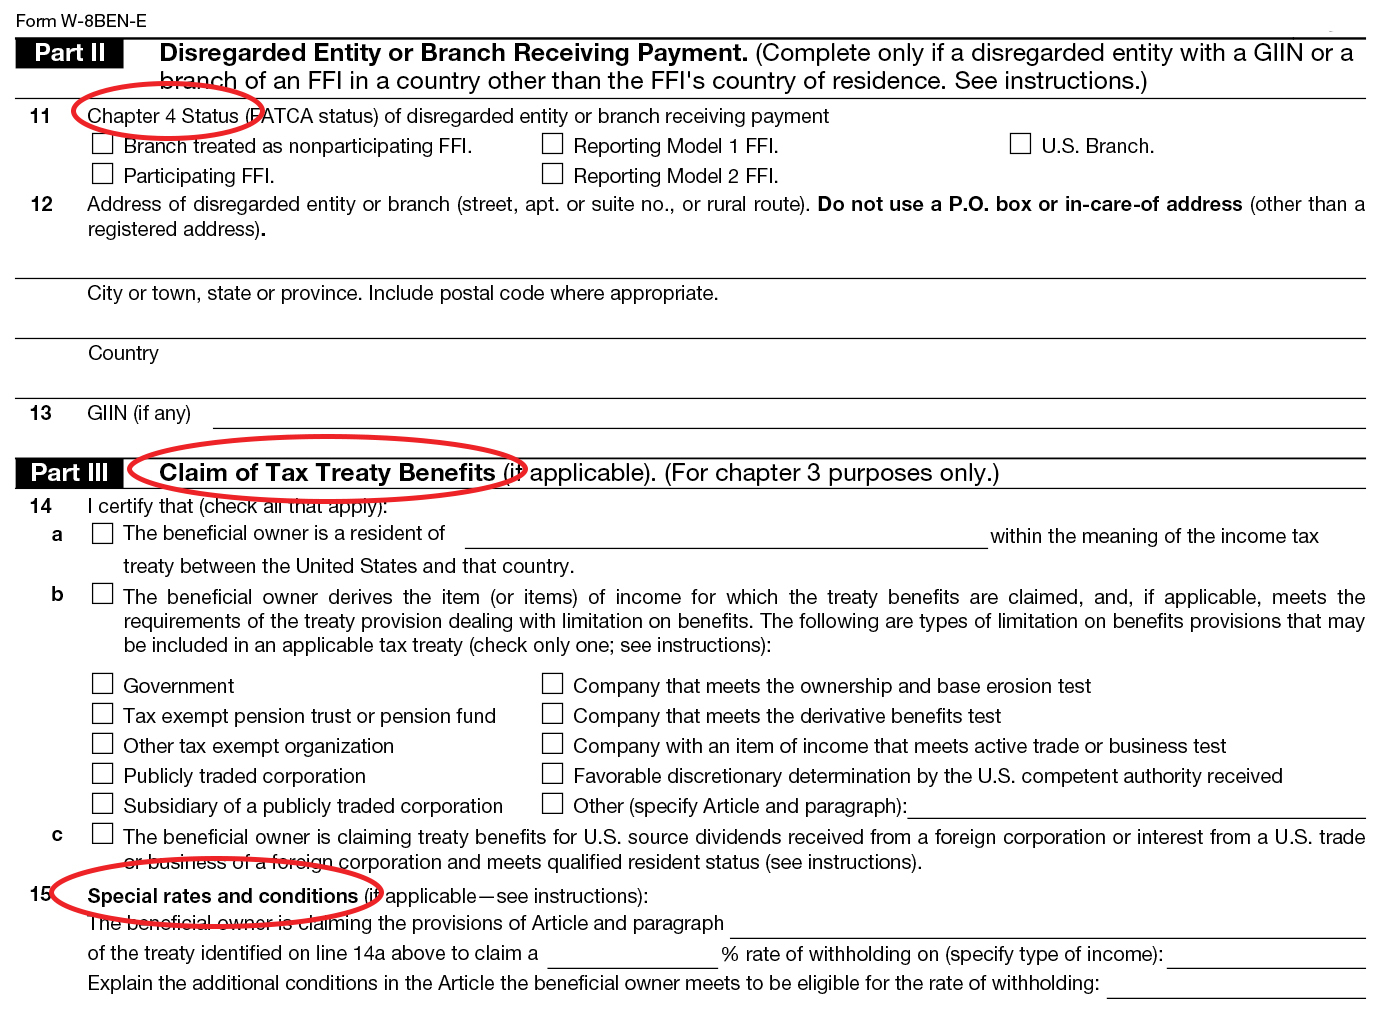 Form W8: Instructions & Information About Irs Tax Form W8